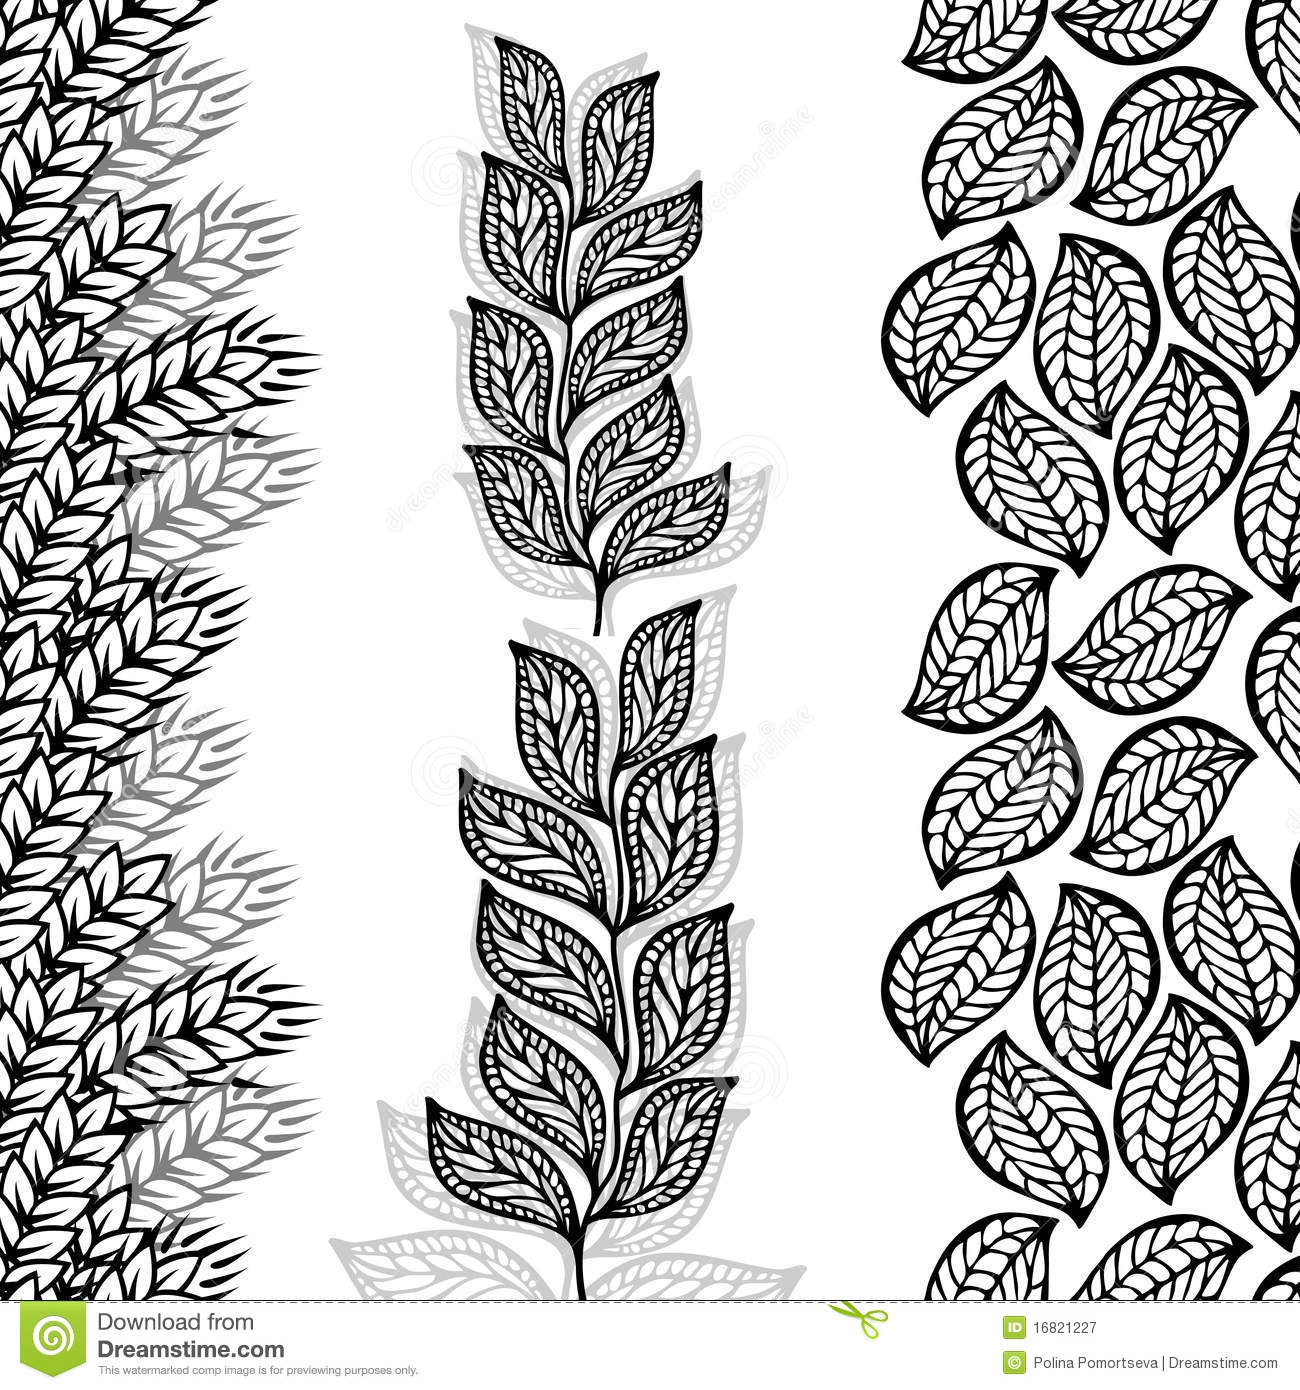 Free Animated Autumn Wallpaper Floral Borders Seamless By Vertical Royalty Free Stock